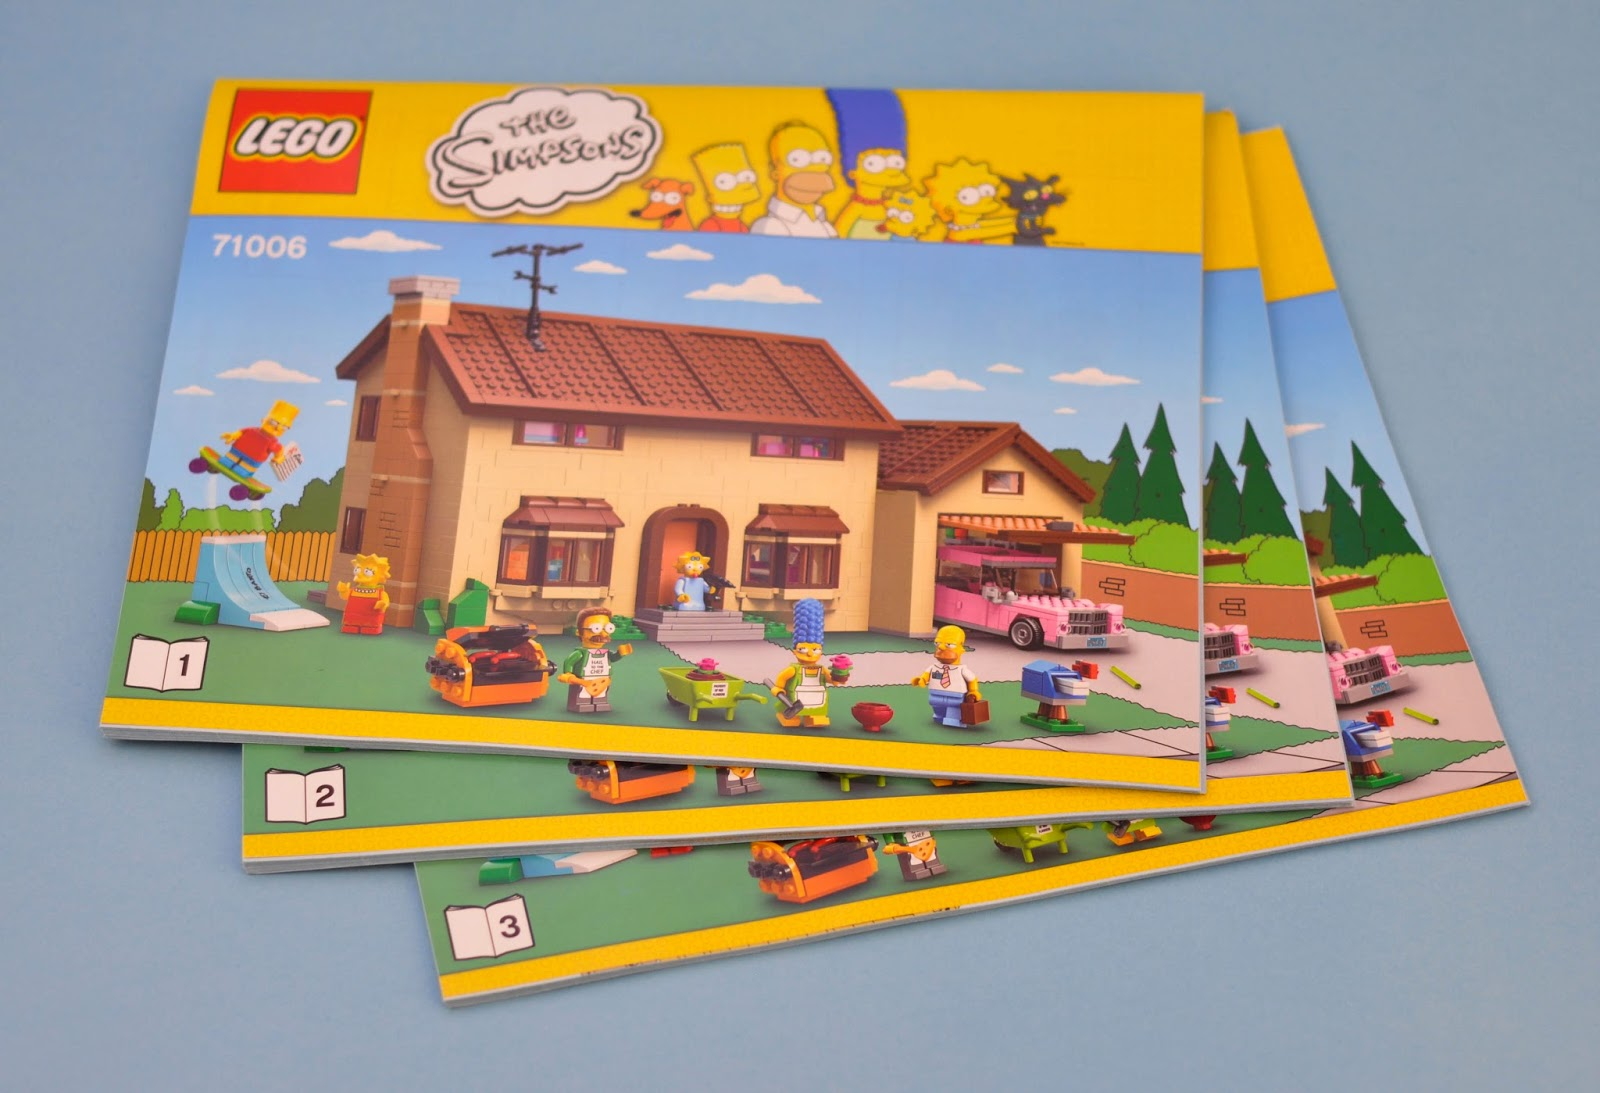 LEGO 71006 The Simpsons The Simpsons House STICKER SHEET